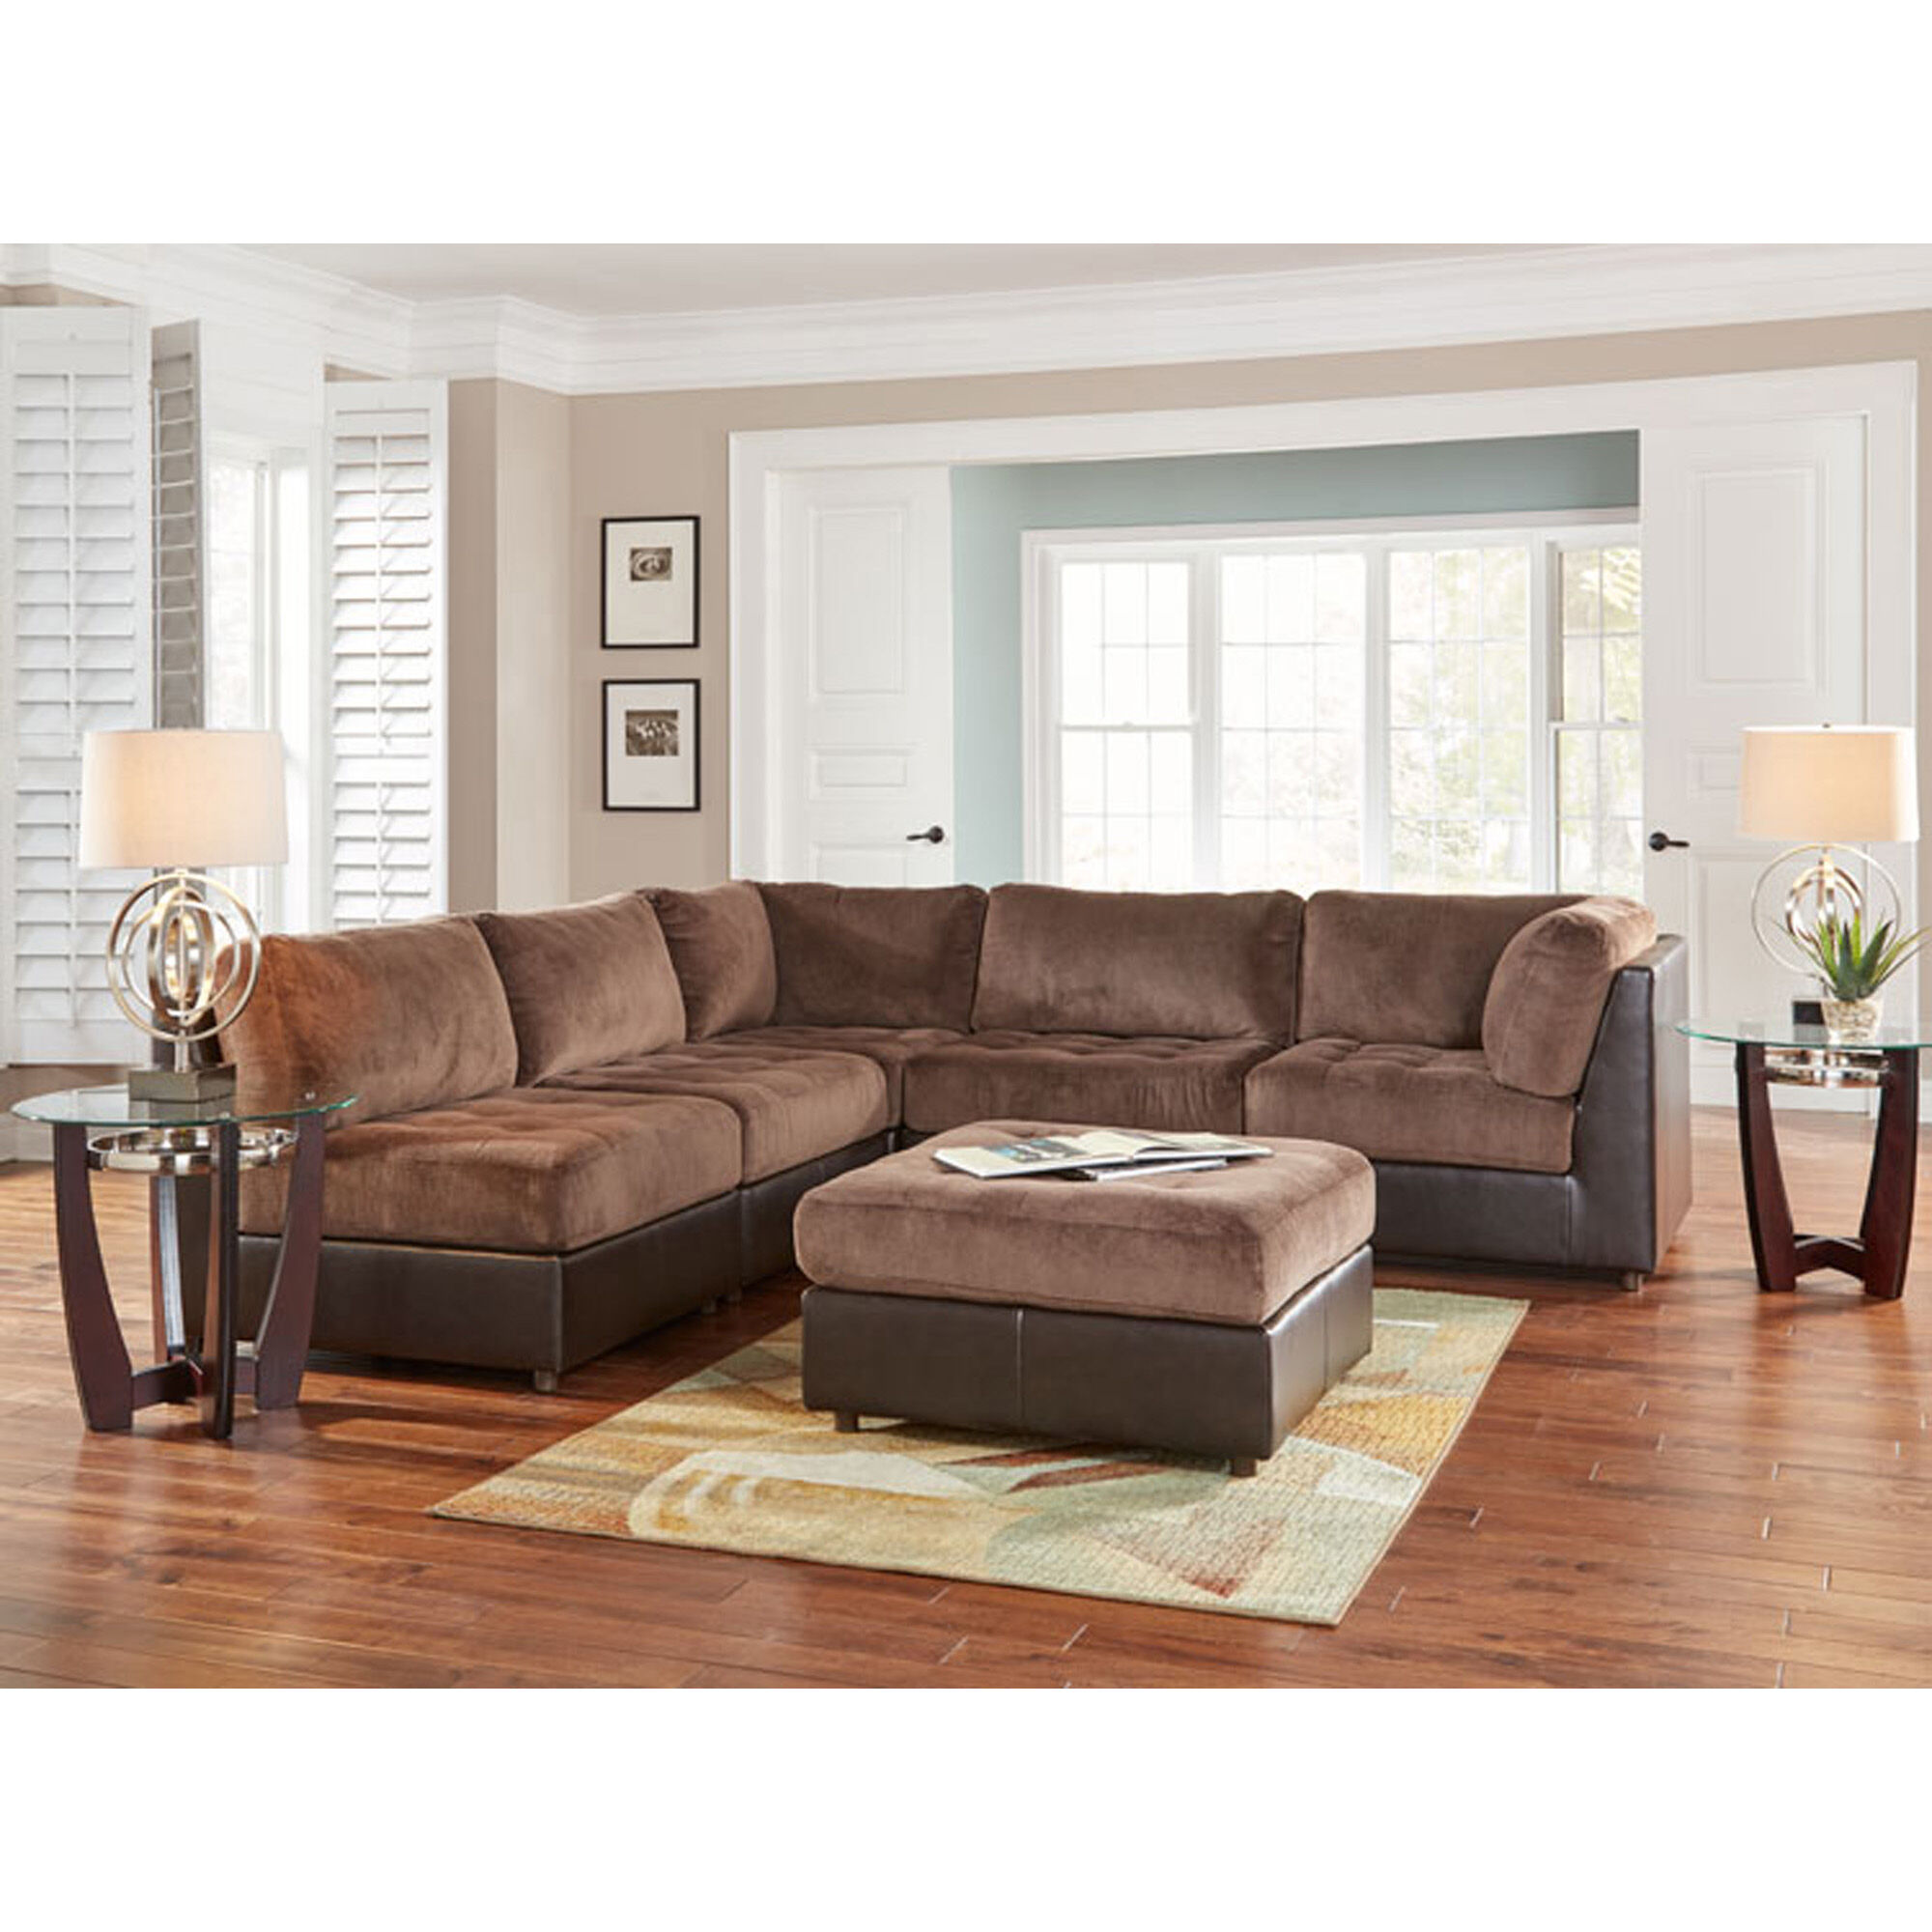 Budget living room furniture Sitting Room 10piece Hennessy Living Room Collection Aarons Rent To Own Living Room Furniture Aarons